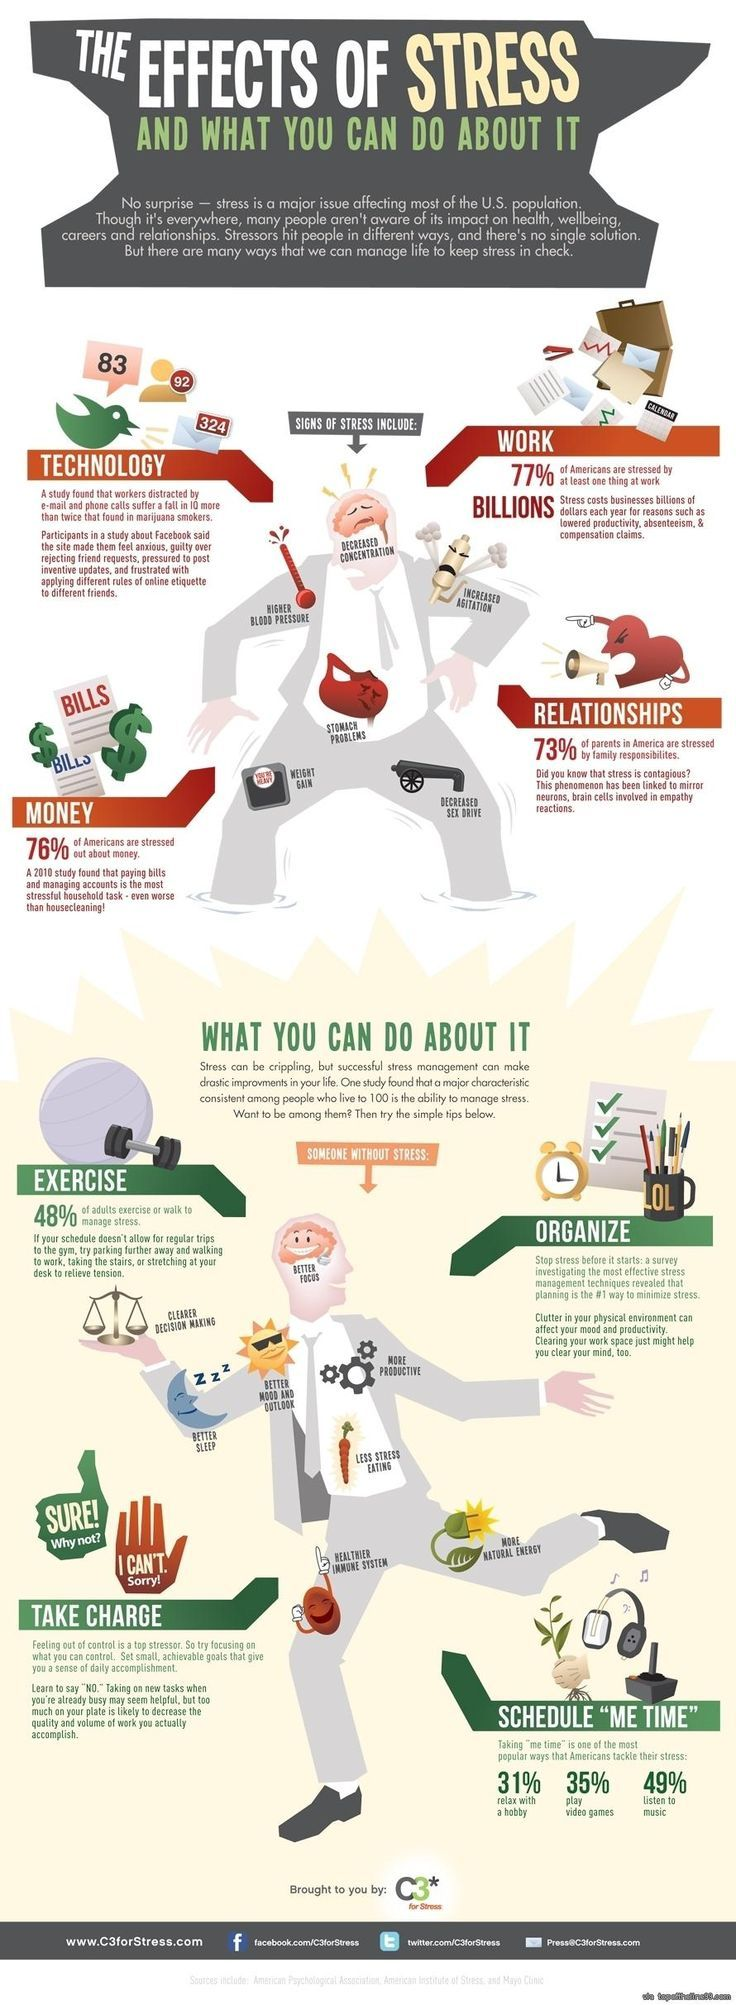 The Effects of Stress and What You Can Do About It | Buzzfeed  #medical #medicine #health #infographic #infographics #stress #mental #self #care